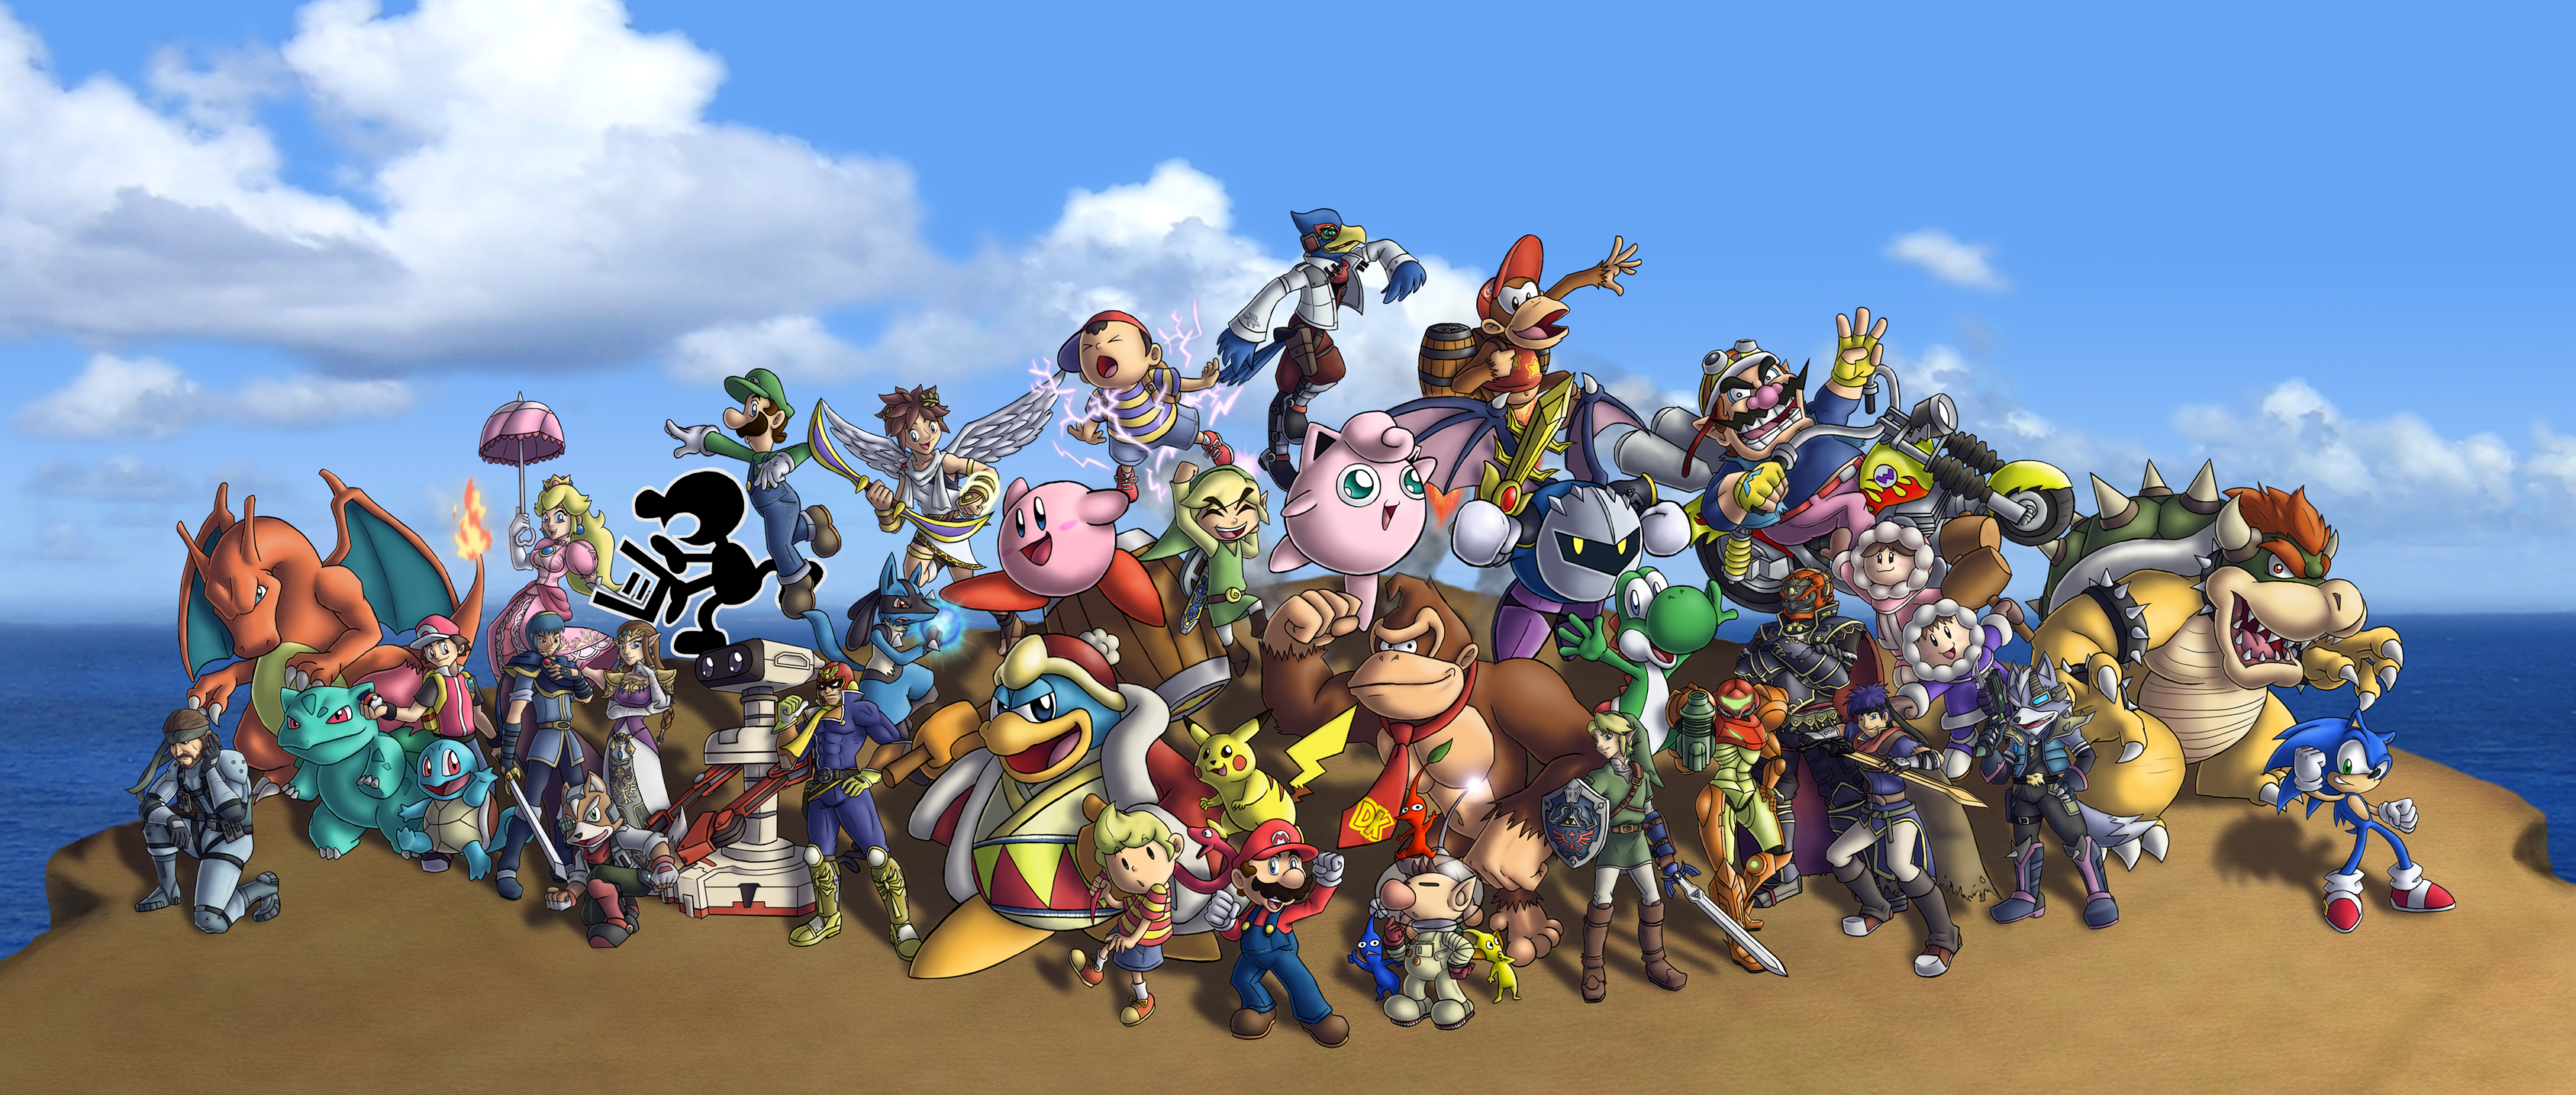 Super Smash Bros Brawl By Chetrippo On Deviantart